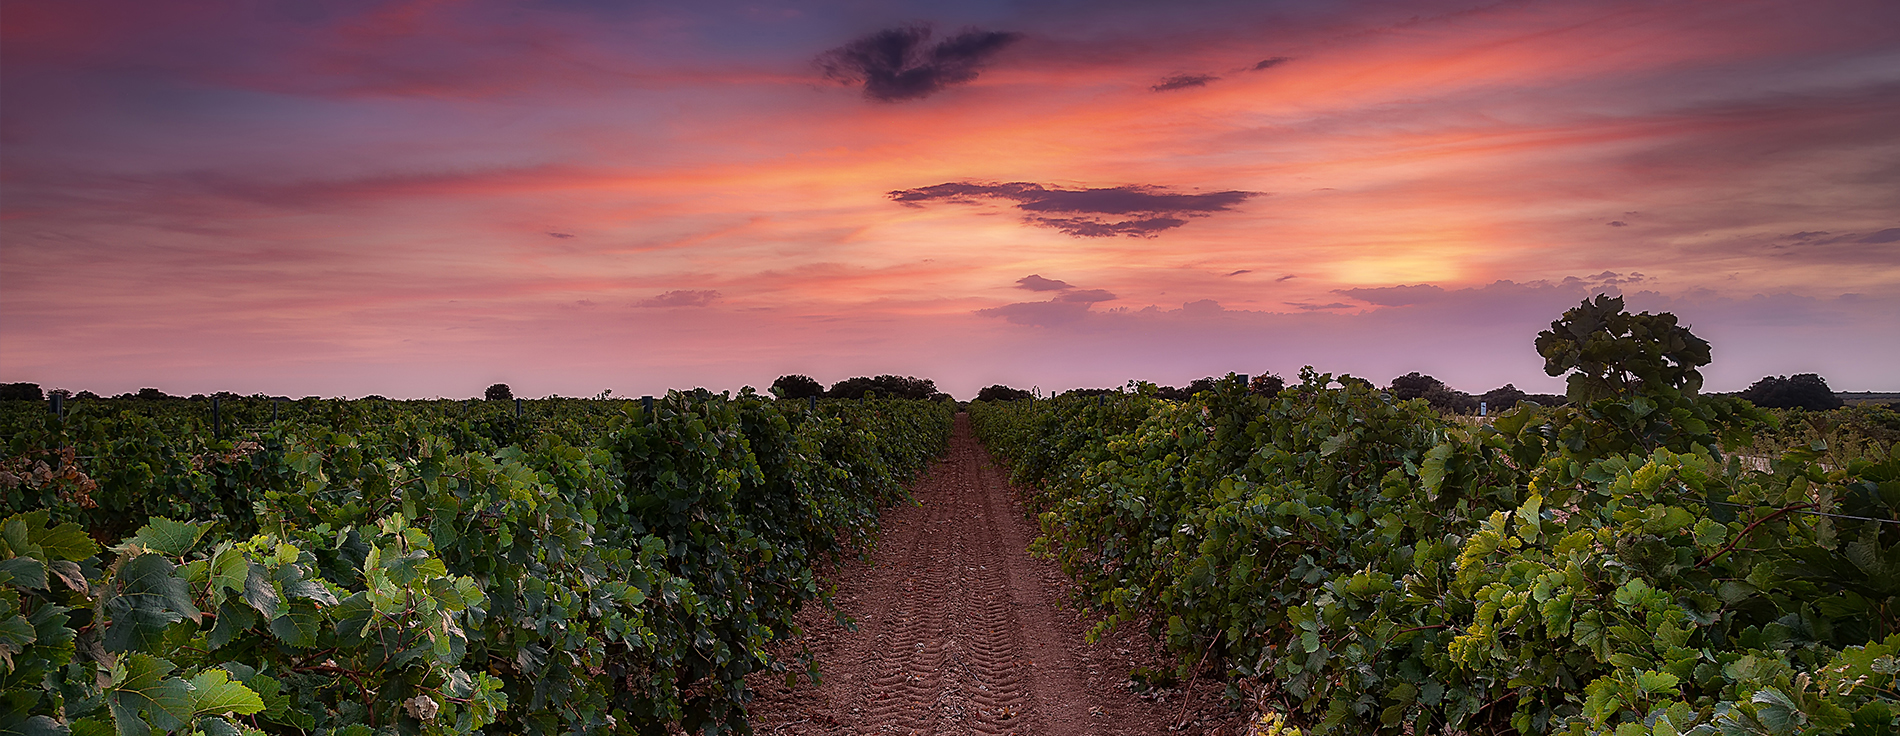 Discover our Family of Fine Wines